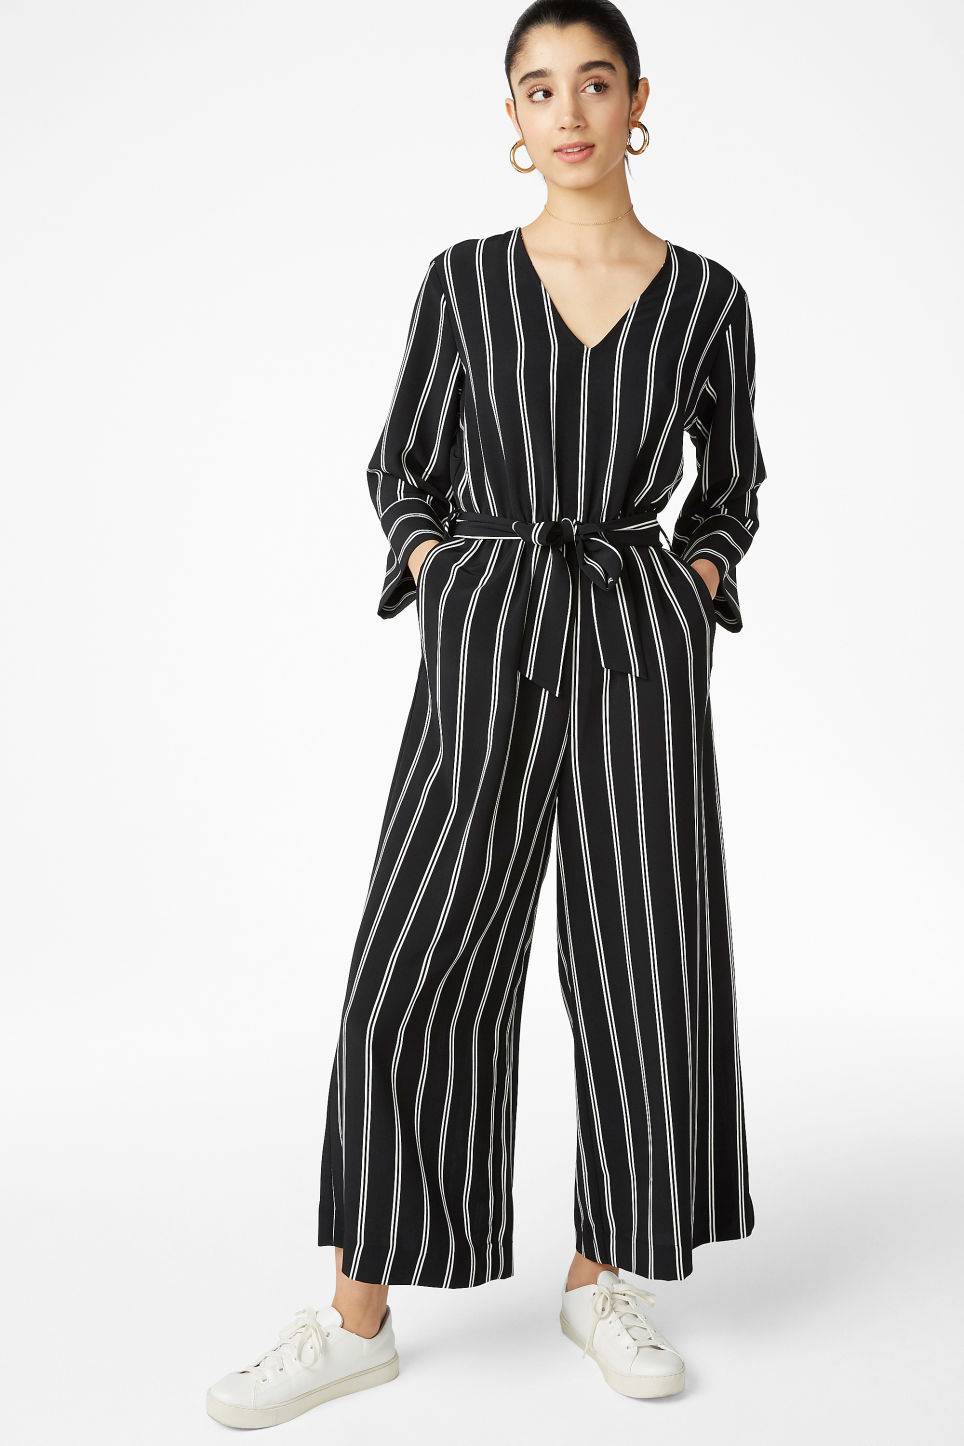 aec76253f1c V-necked jumpsuit - Striped to perfection - Jumpsuits - Monki